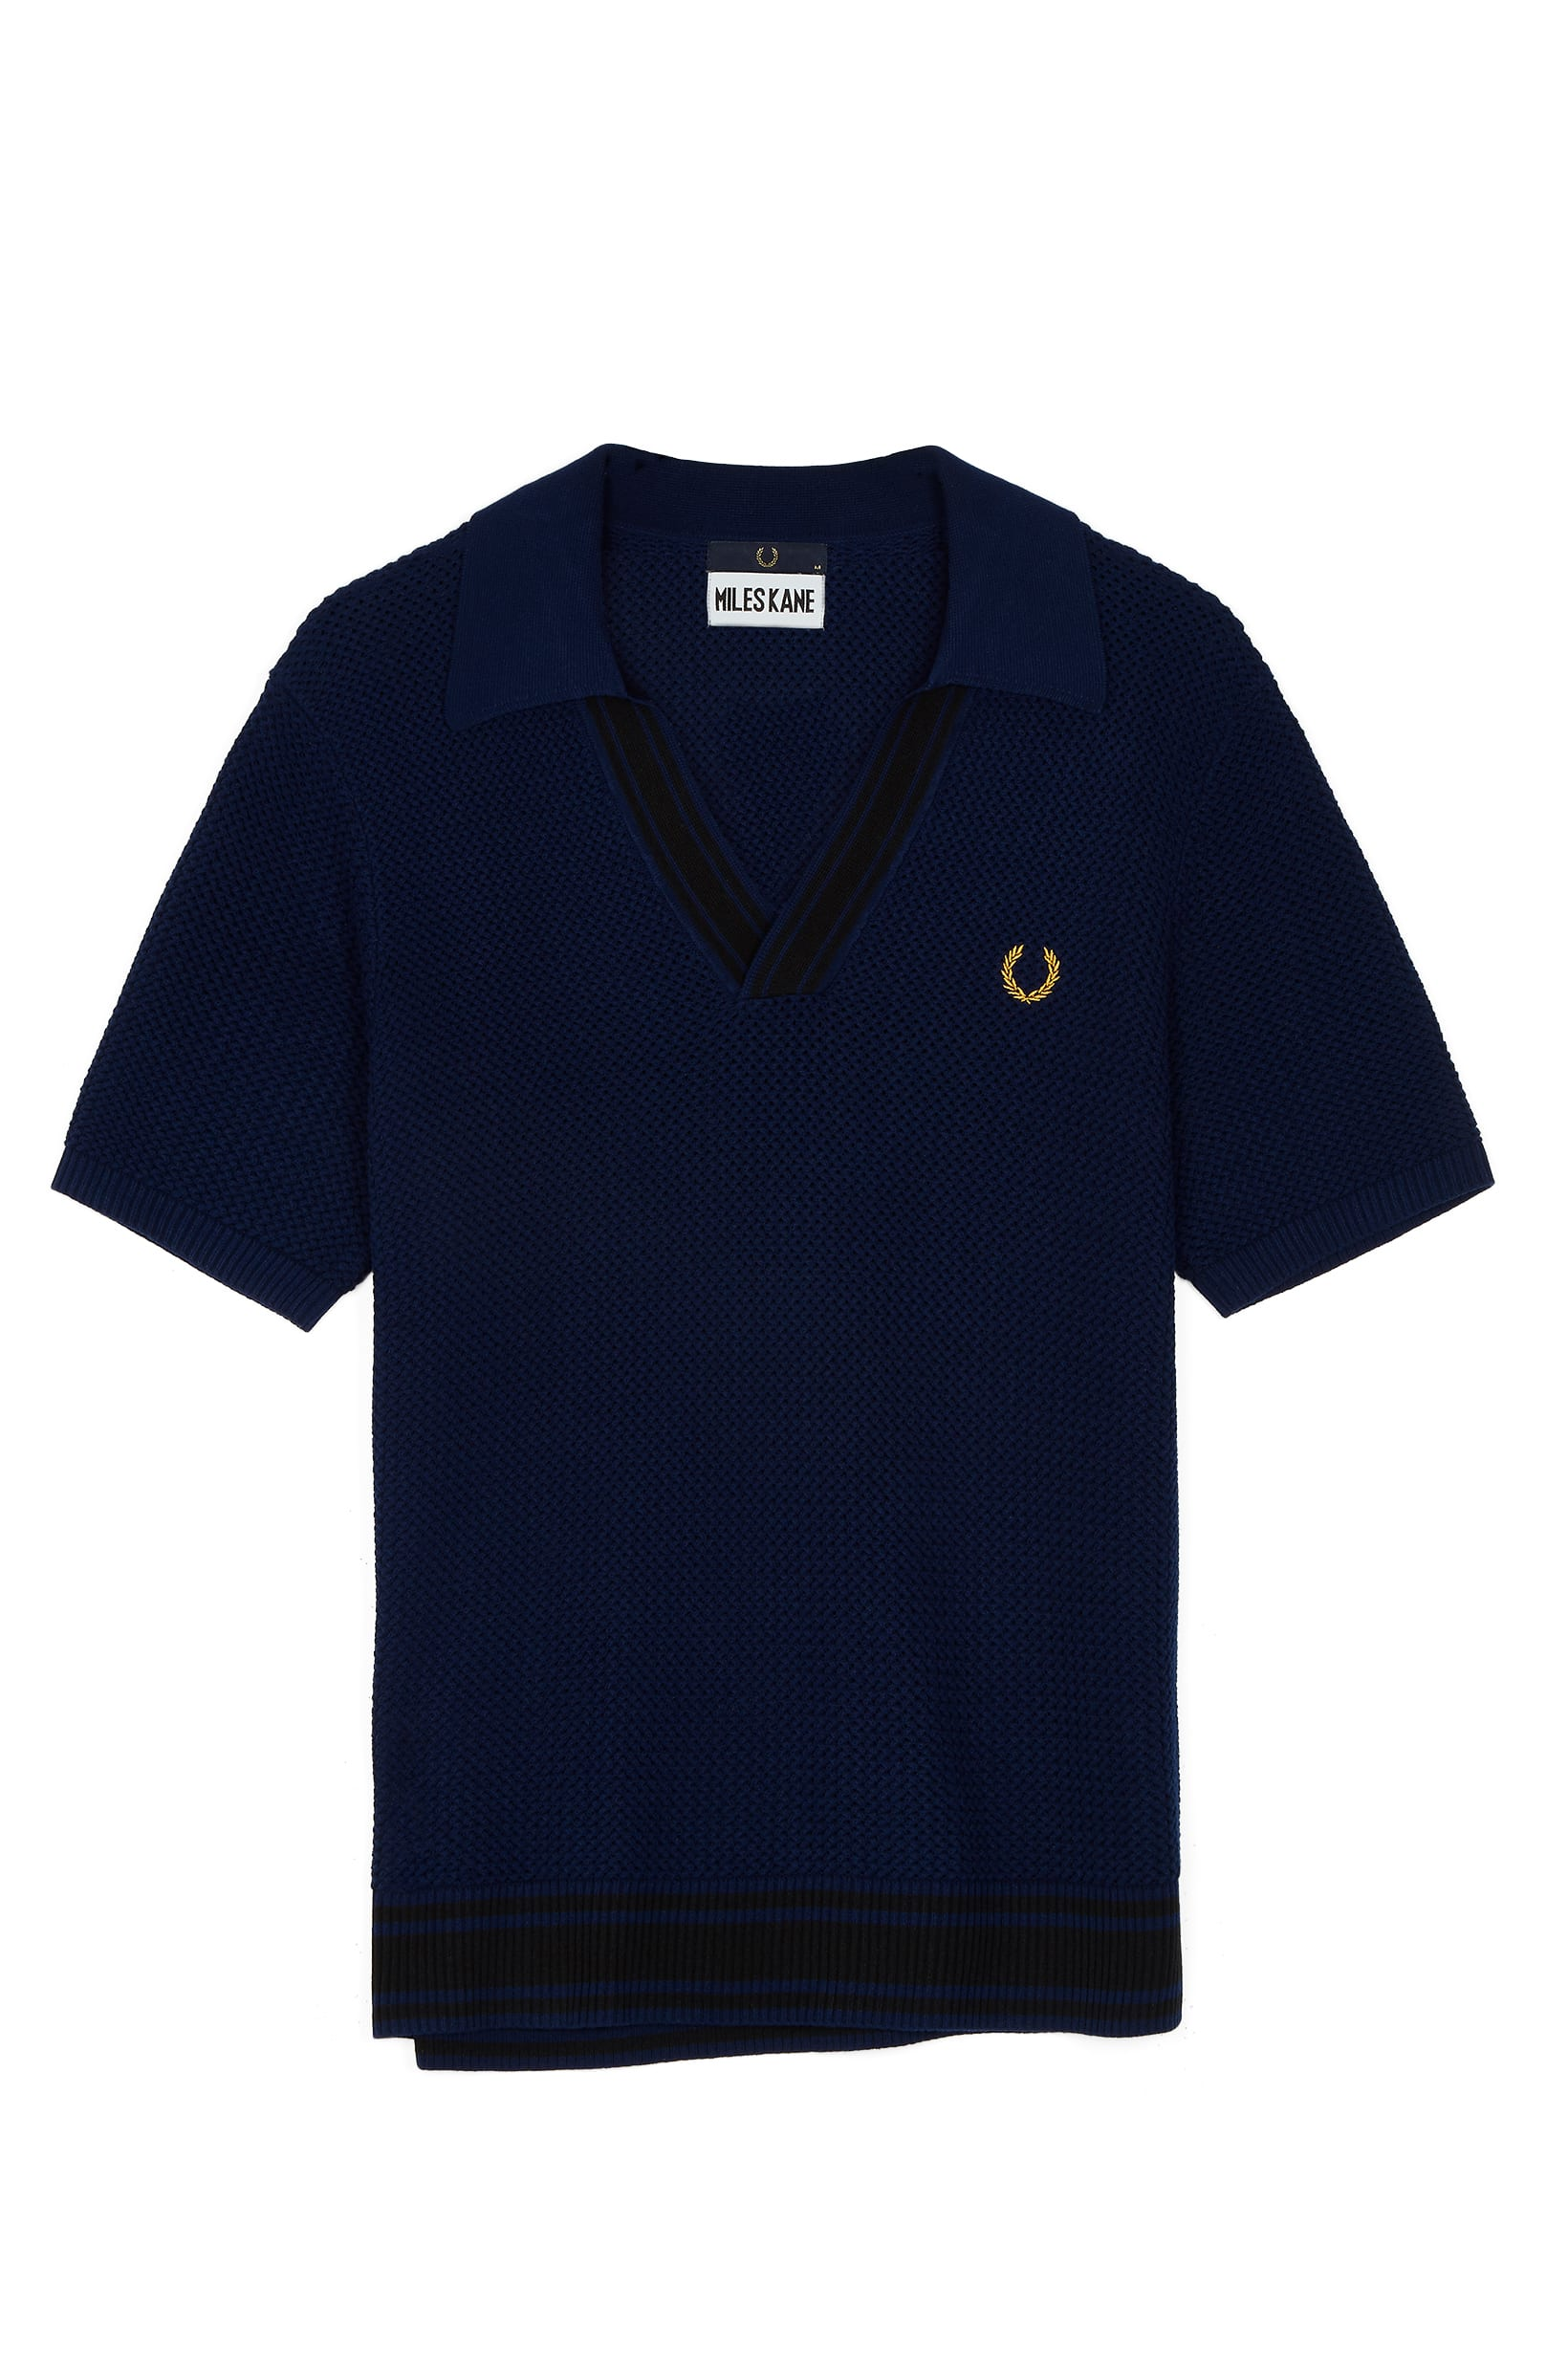 fredperrymiles10